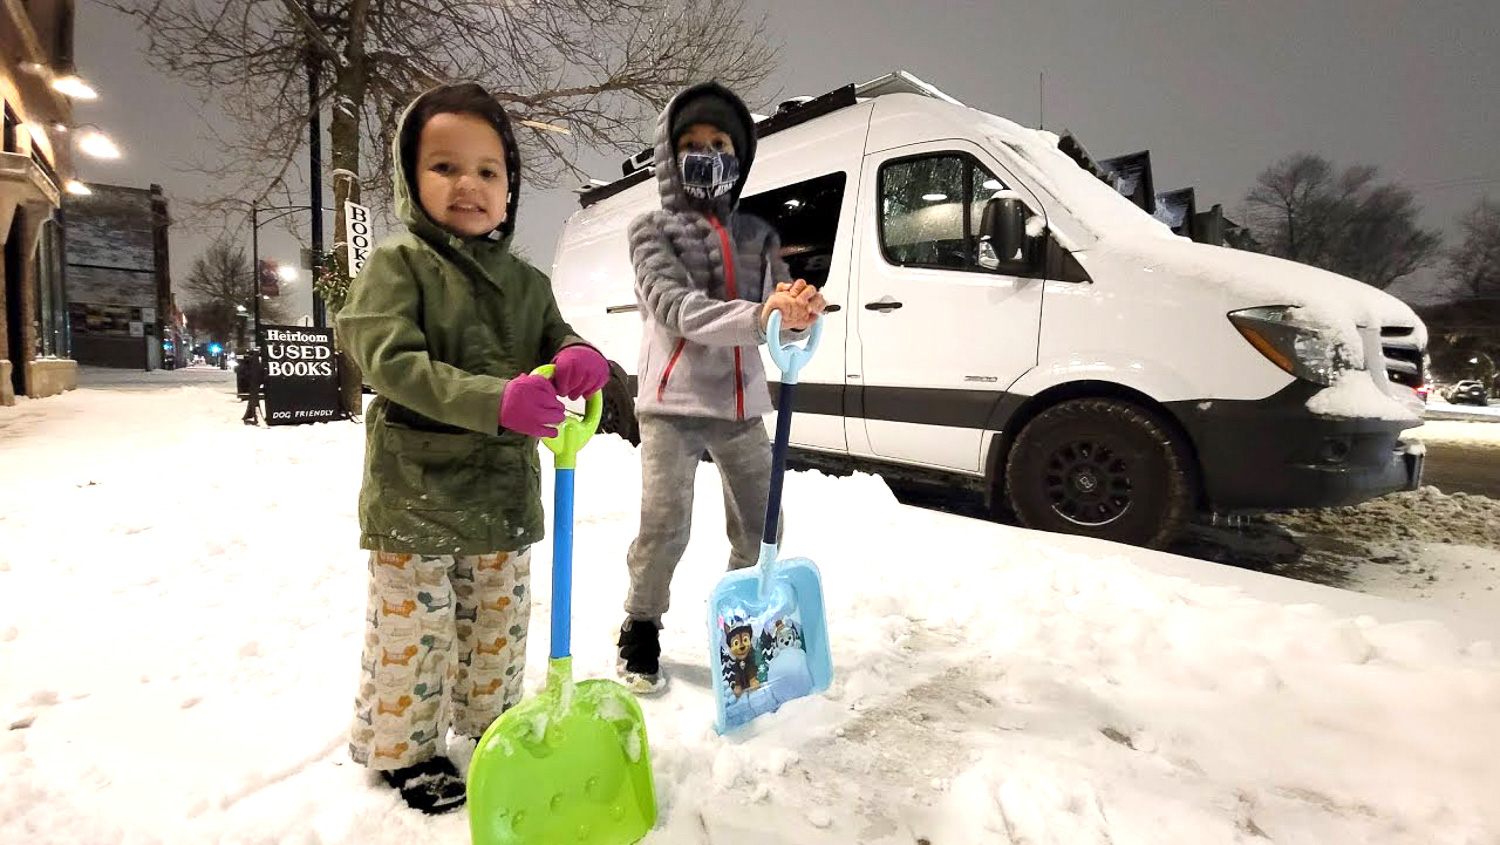 A winter RV trip has its difficulties, but if done right can be just as much fun as one during the summer!